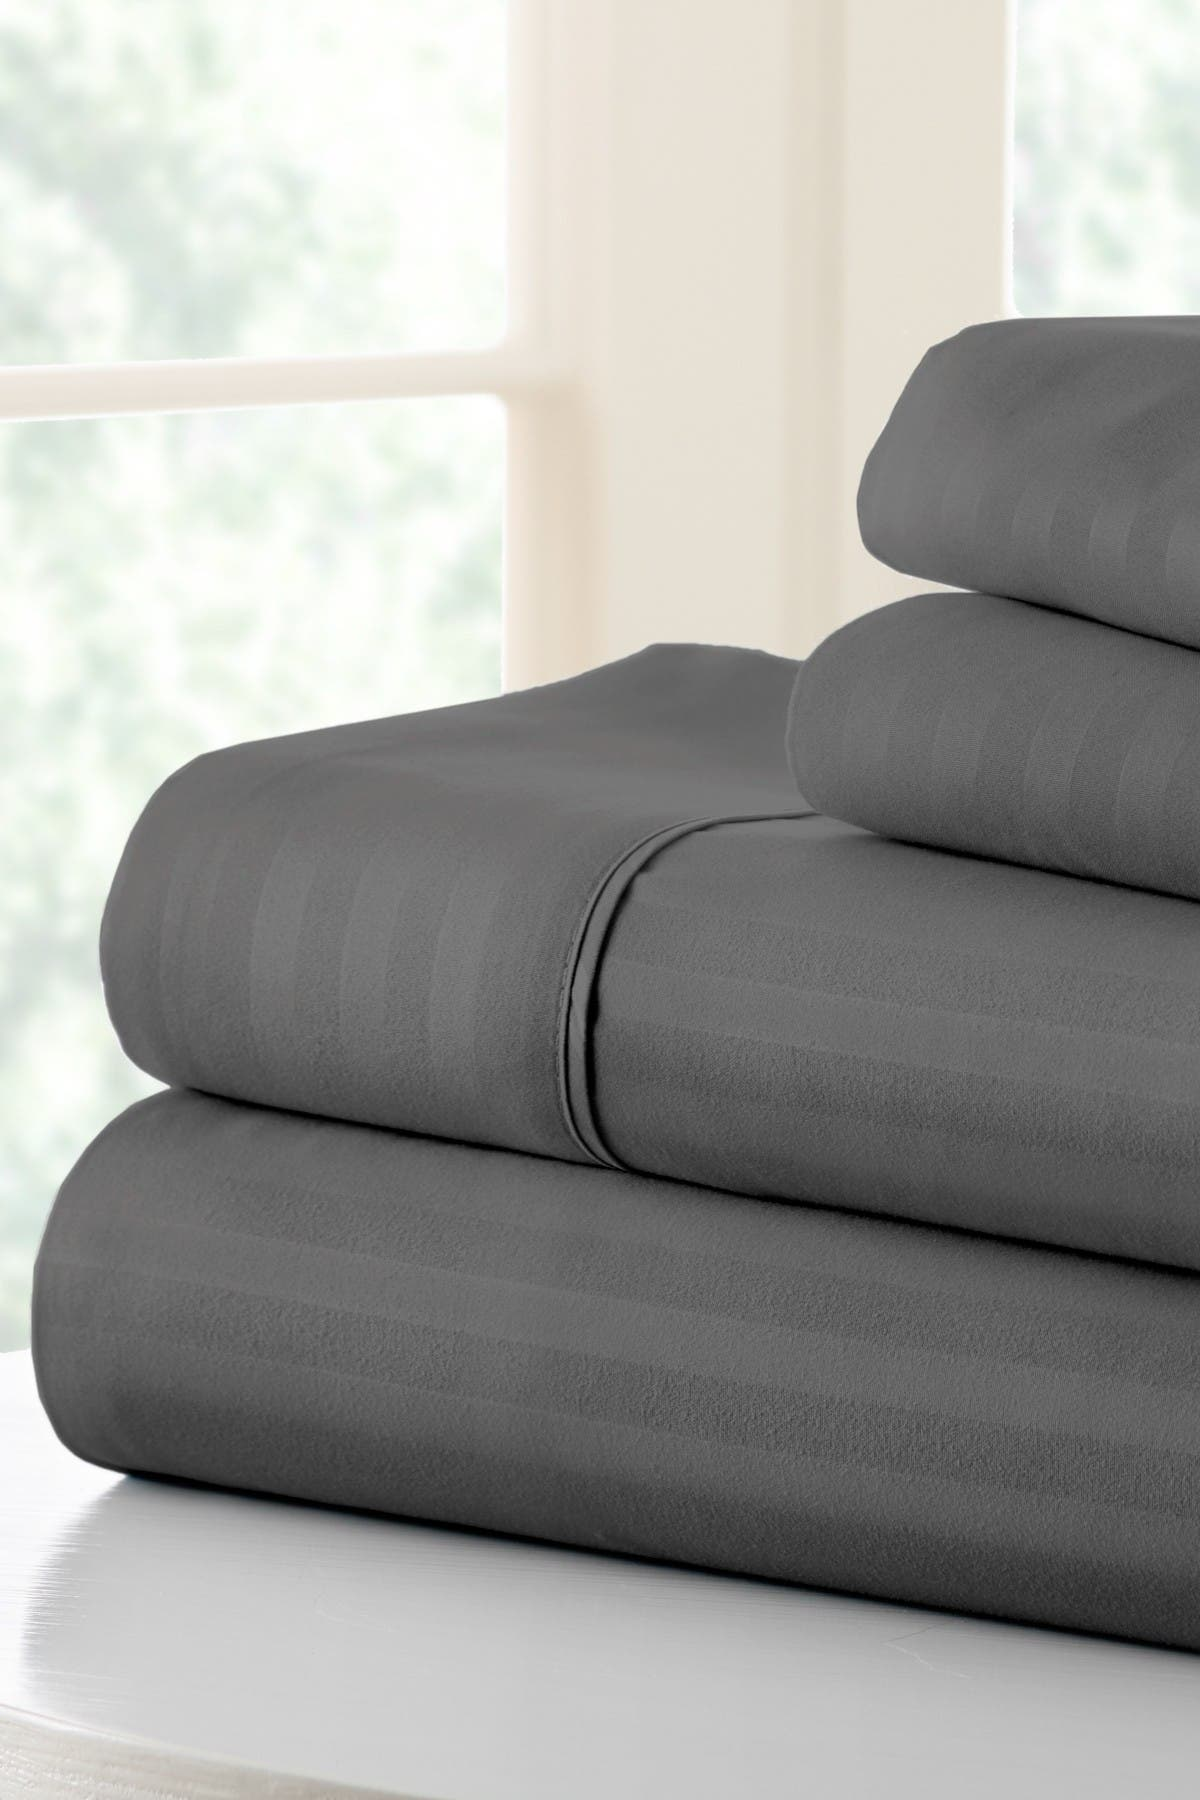 Image of IENJOY HOME Full Hotel Collection Premium Ultra Soft 4-Piece Striped Bed Sheet Set - Gray